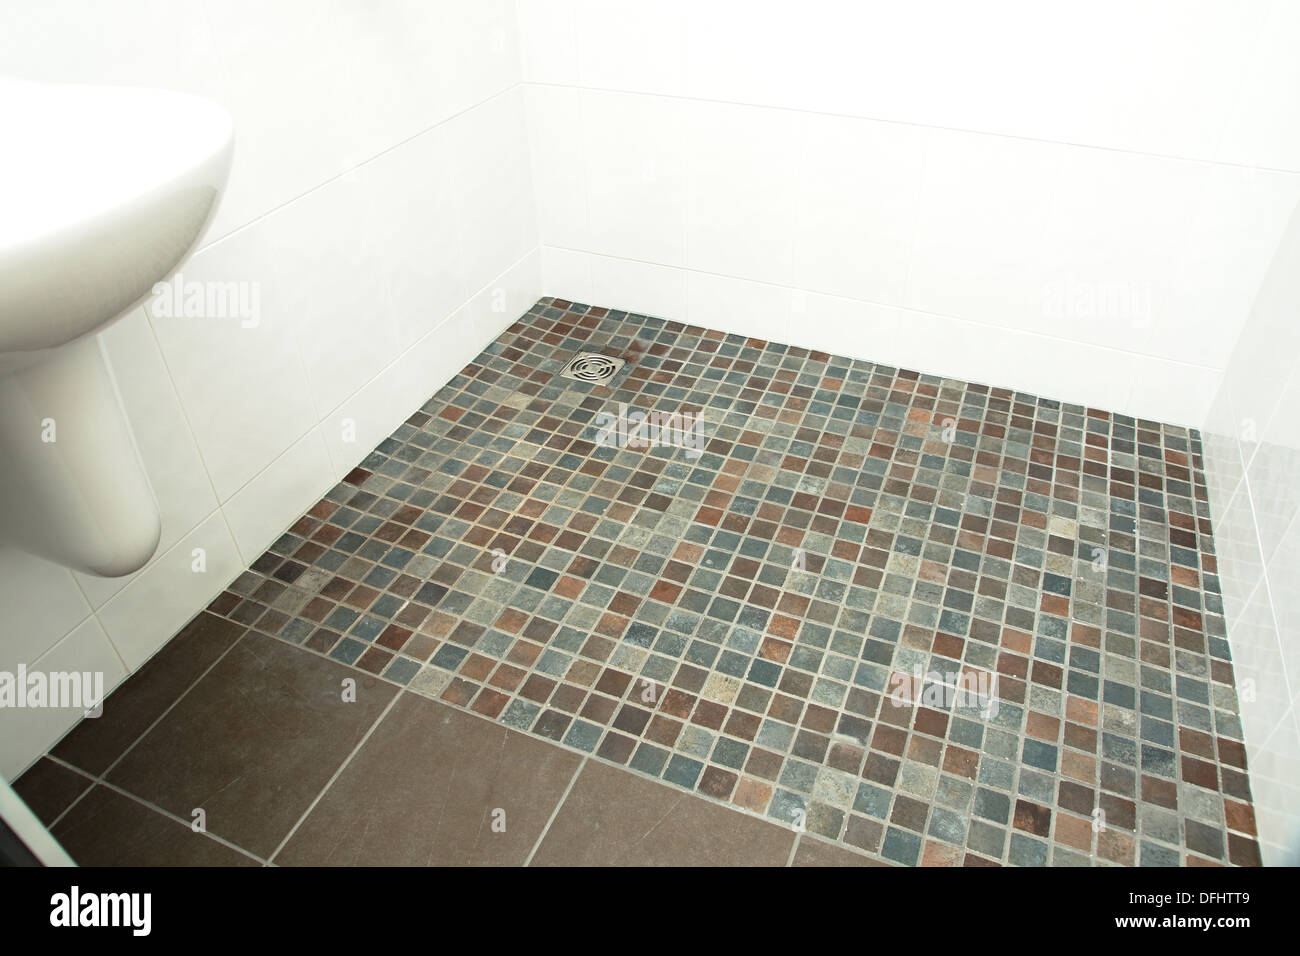 https www alamy com a specially adapted wet room shower bathroom with non slip tiles used image61243625 html